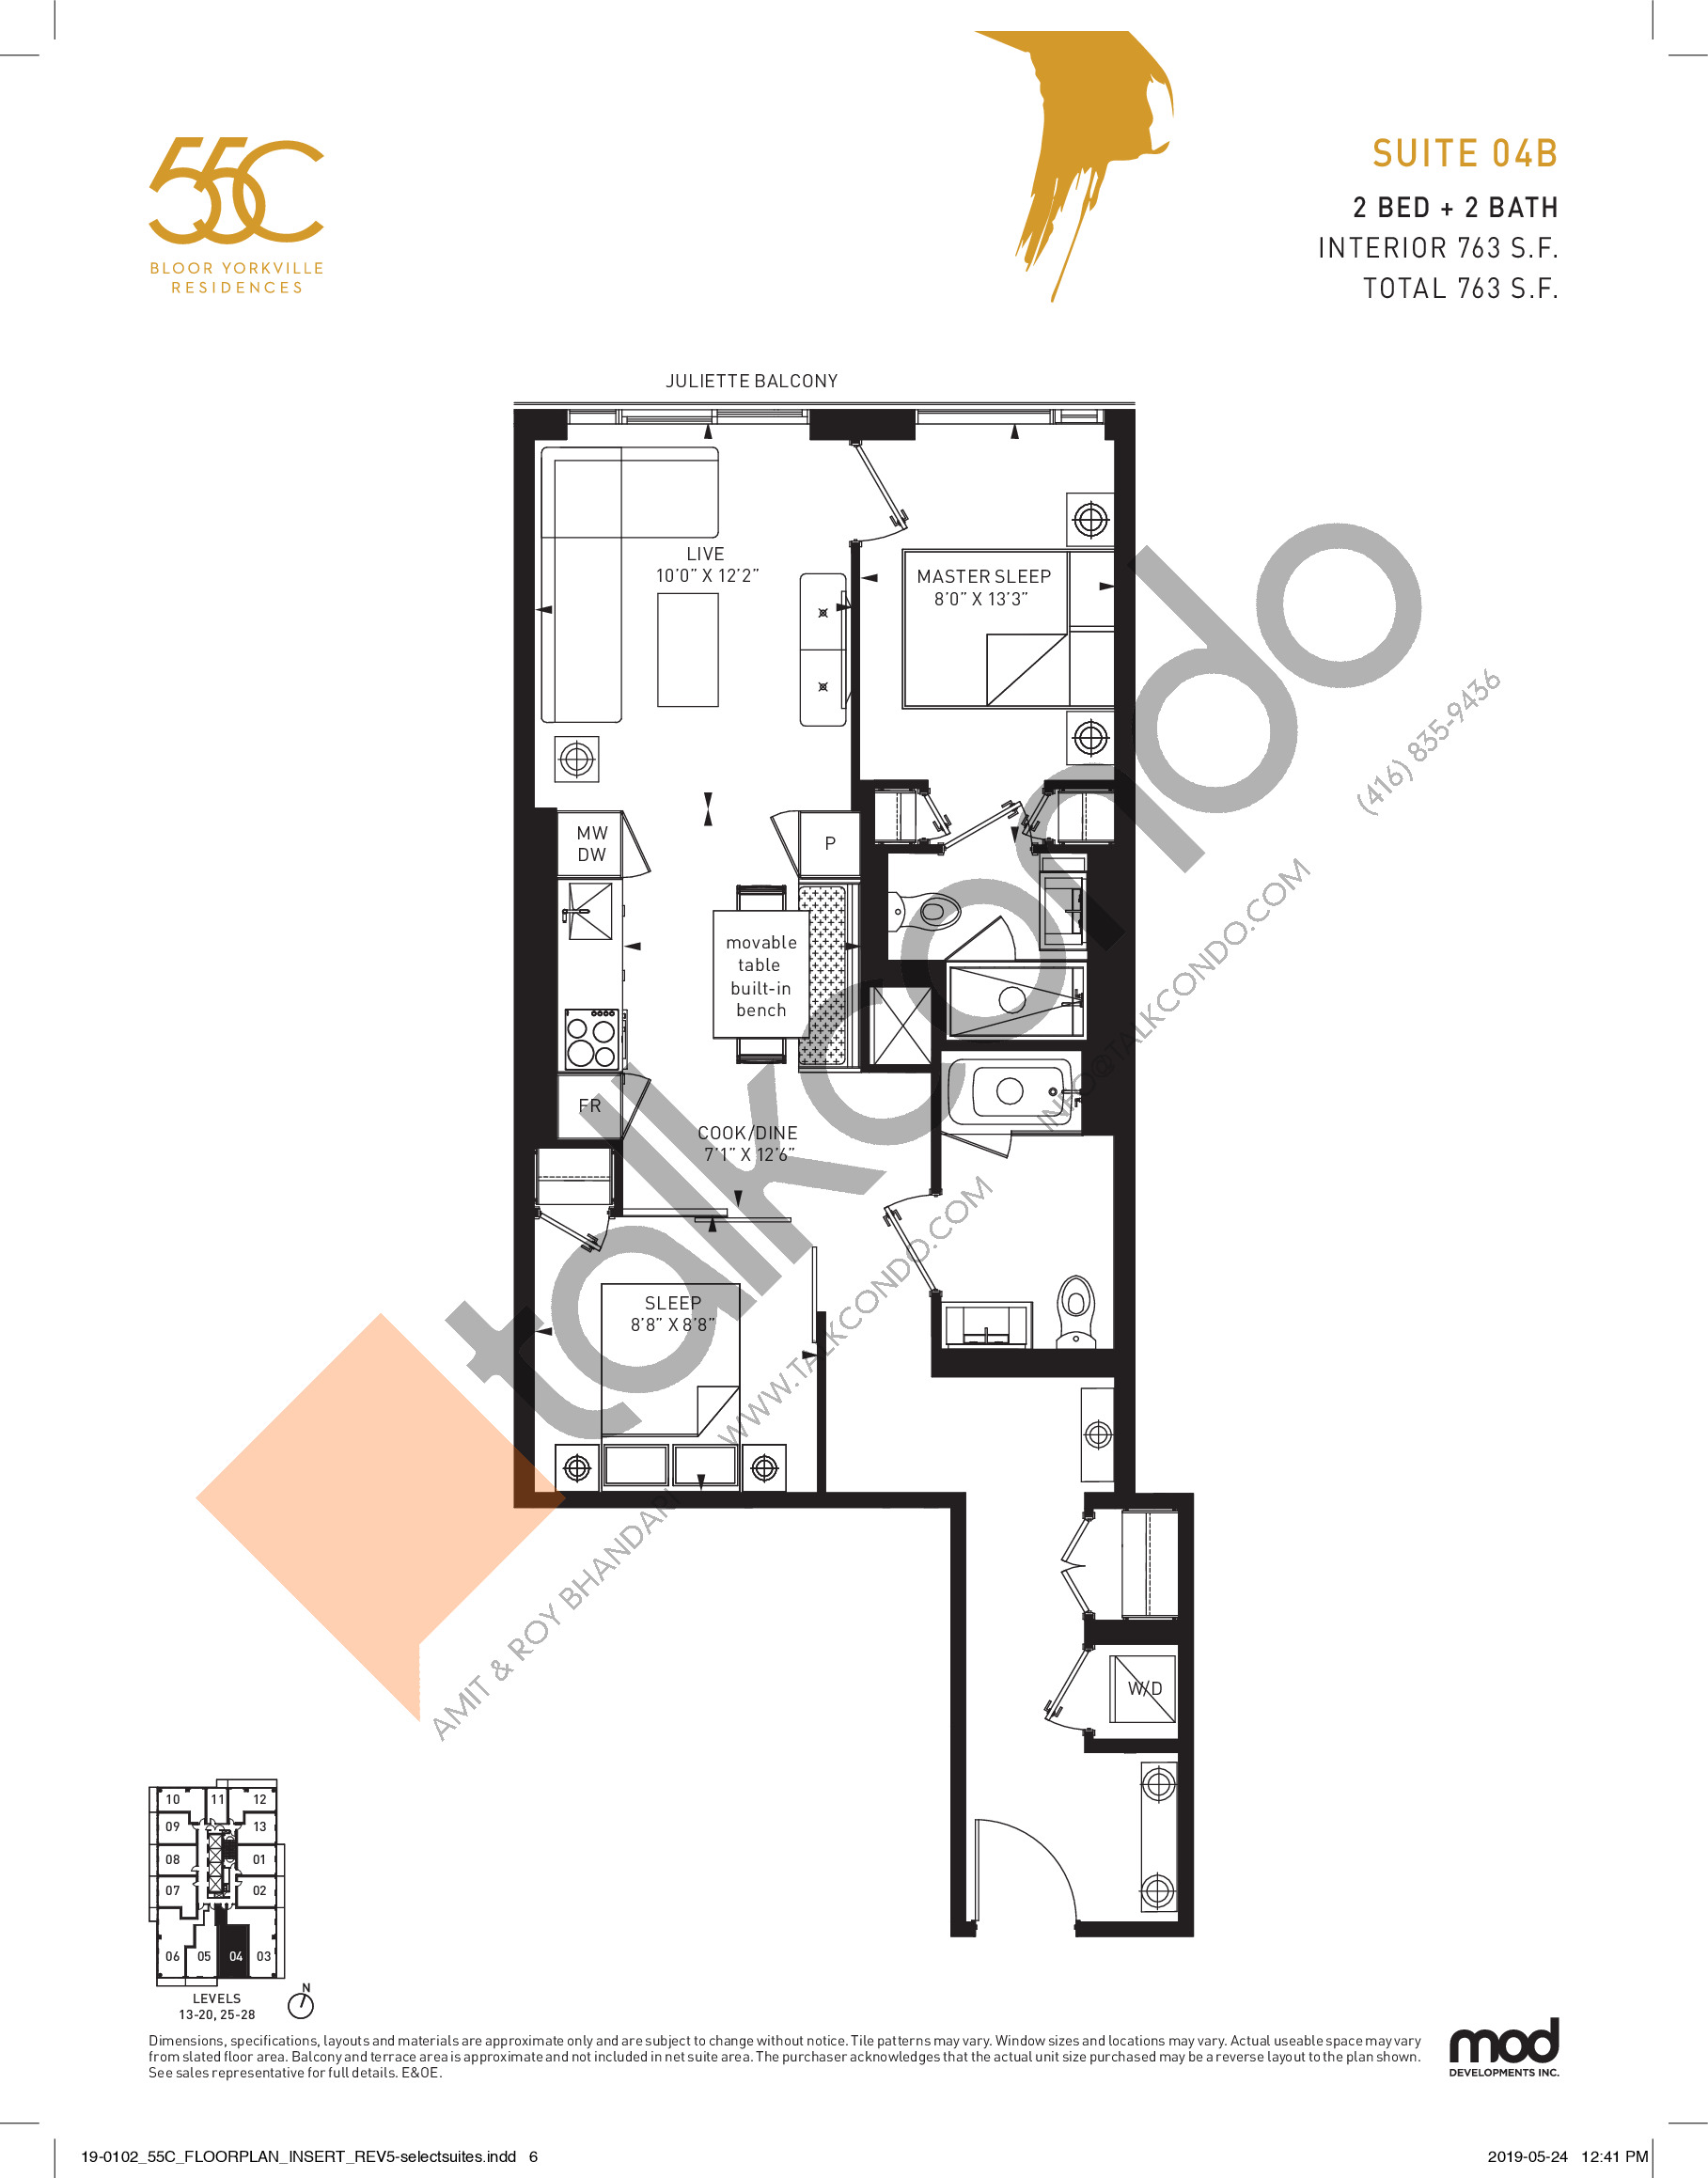 Suite 04B Floor Plan at 55C Condos - 763 sq.ft